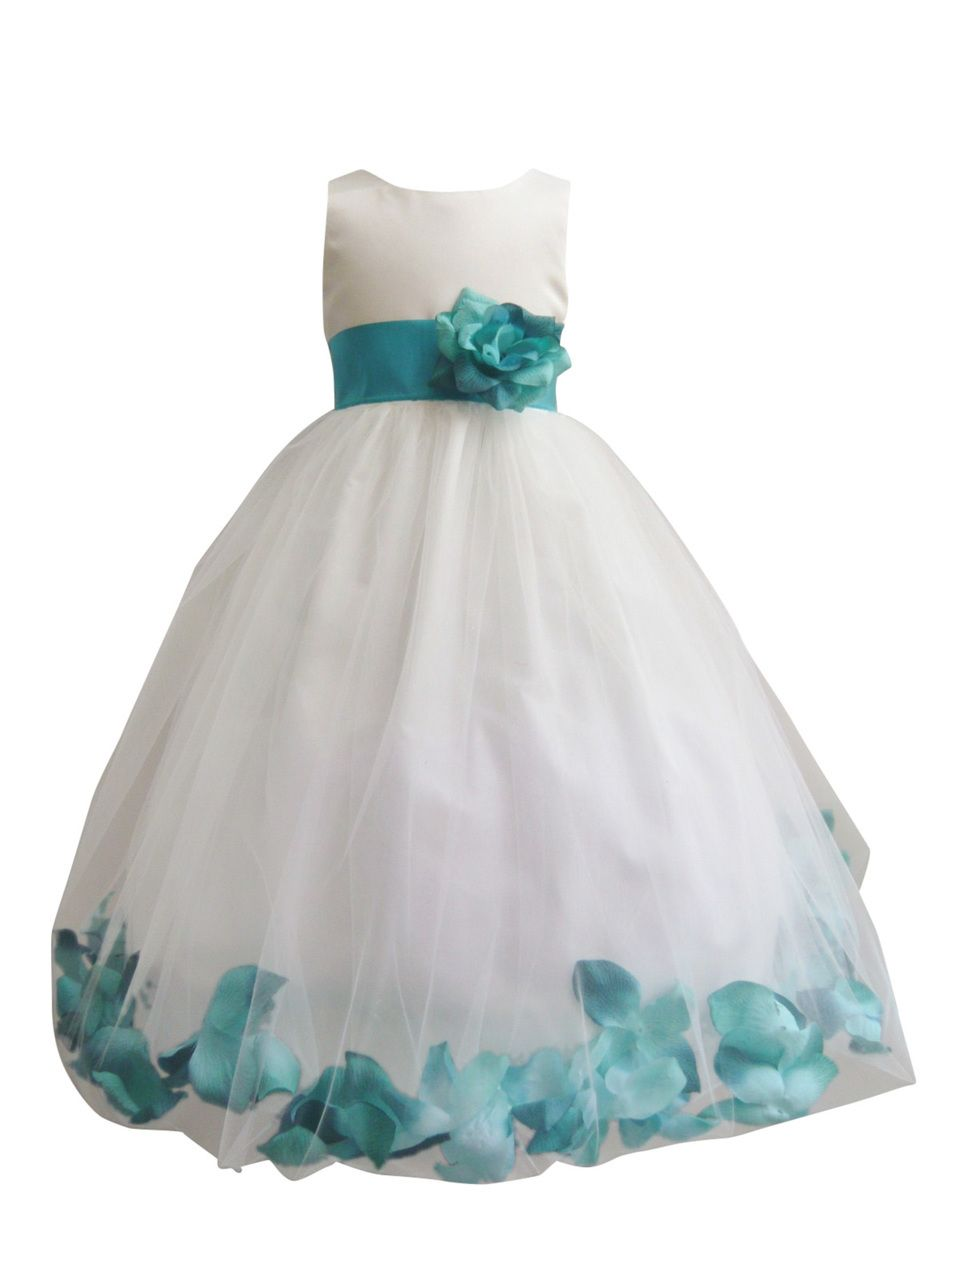 2e6d8fd97da Flower Girl Dress Rose Petal Ivory, Teal - Easter, Wedding ...